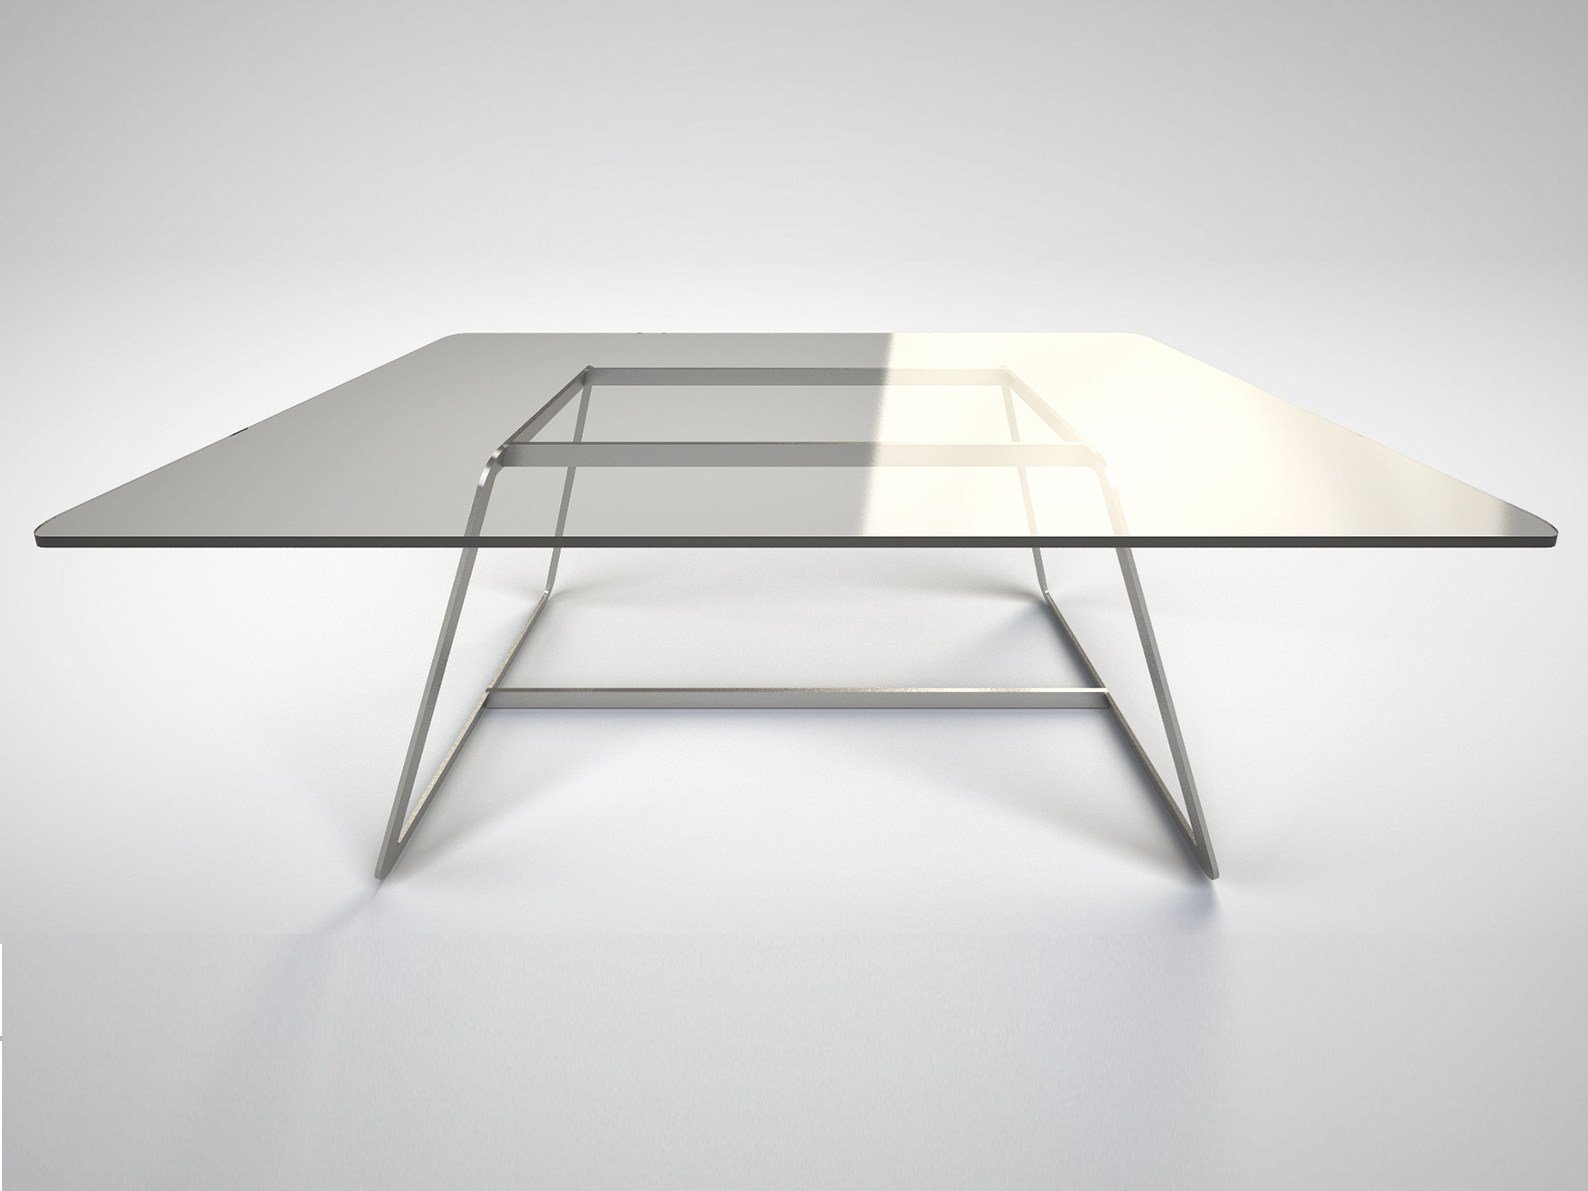 square float glass table tour by fontanaarte design gae aulenti